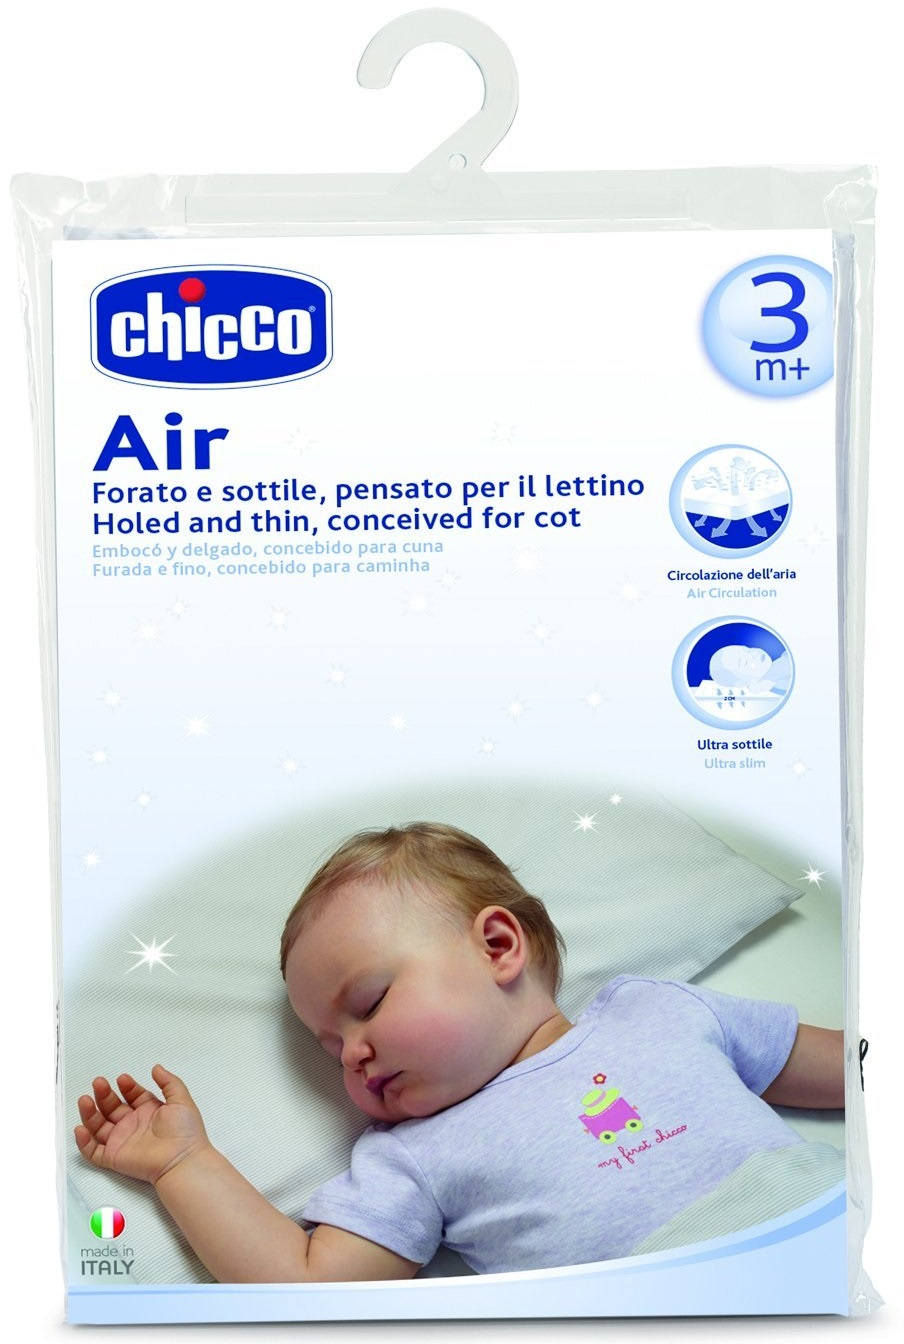 Детская подушка Chicco Air, белый